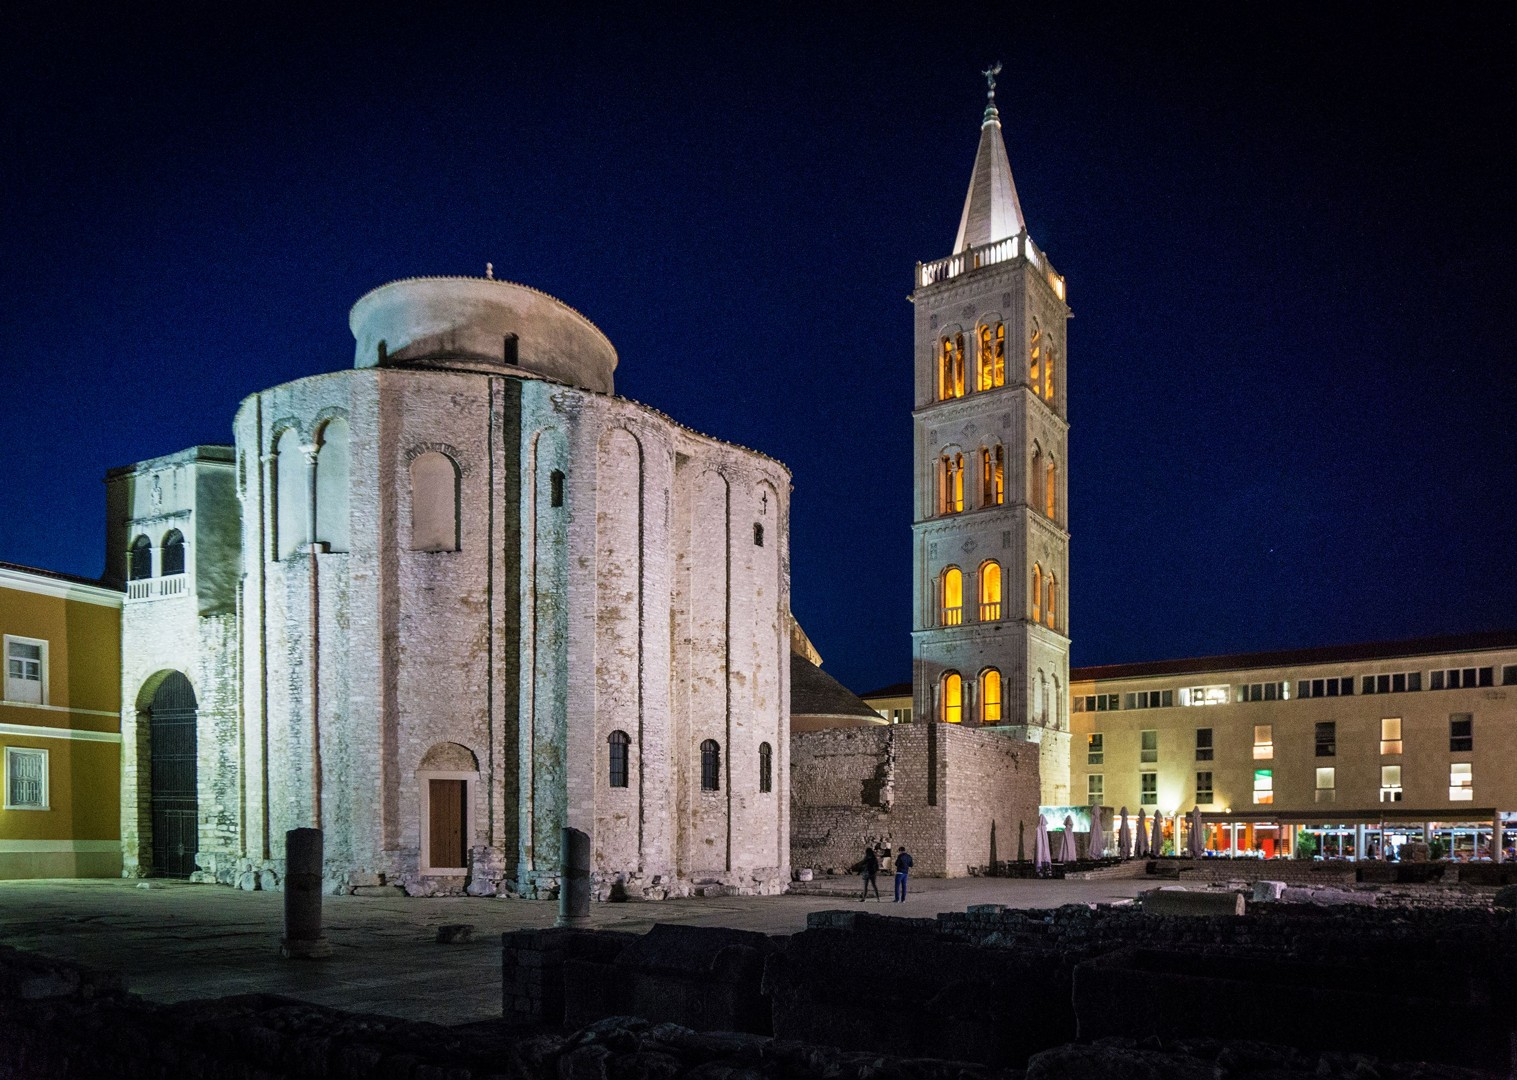 visit-zadar-cycling-holiday-croatia.jpg - Croatia - Dalmatian National Parks and Islands - Bike and Boat Holiday - Leisure Cycling